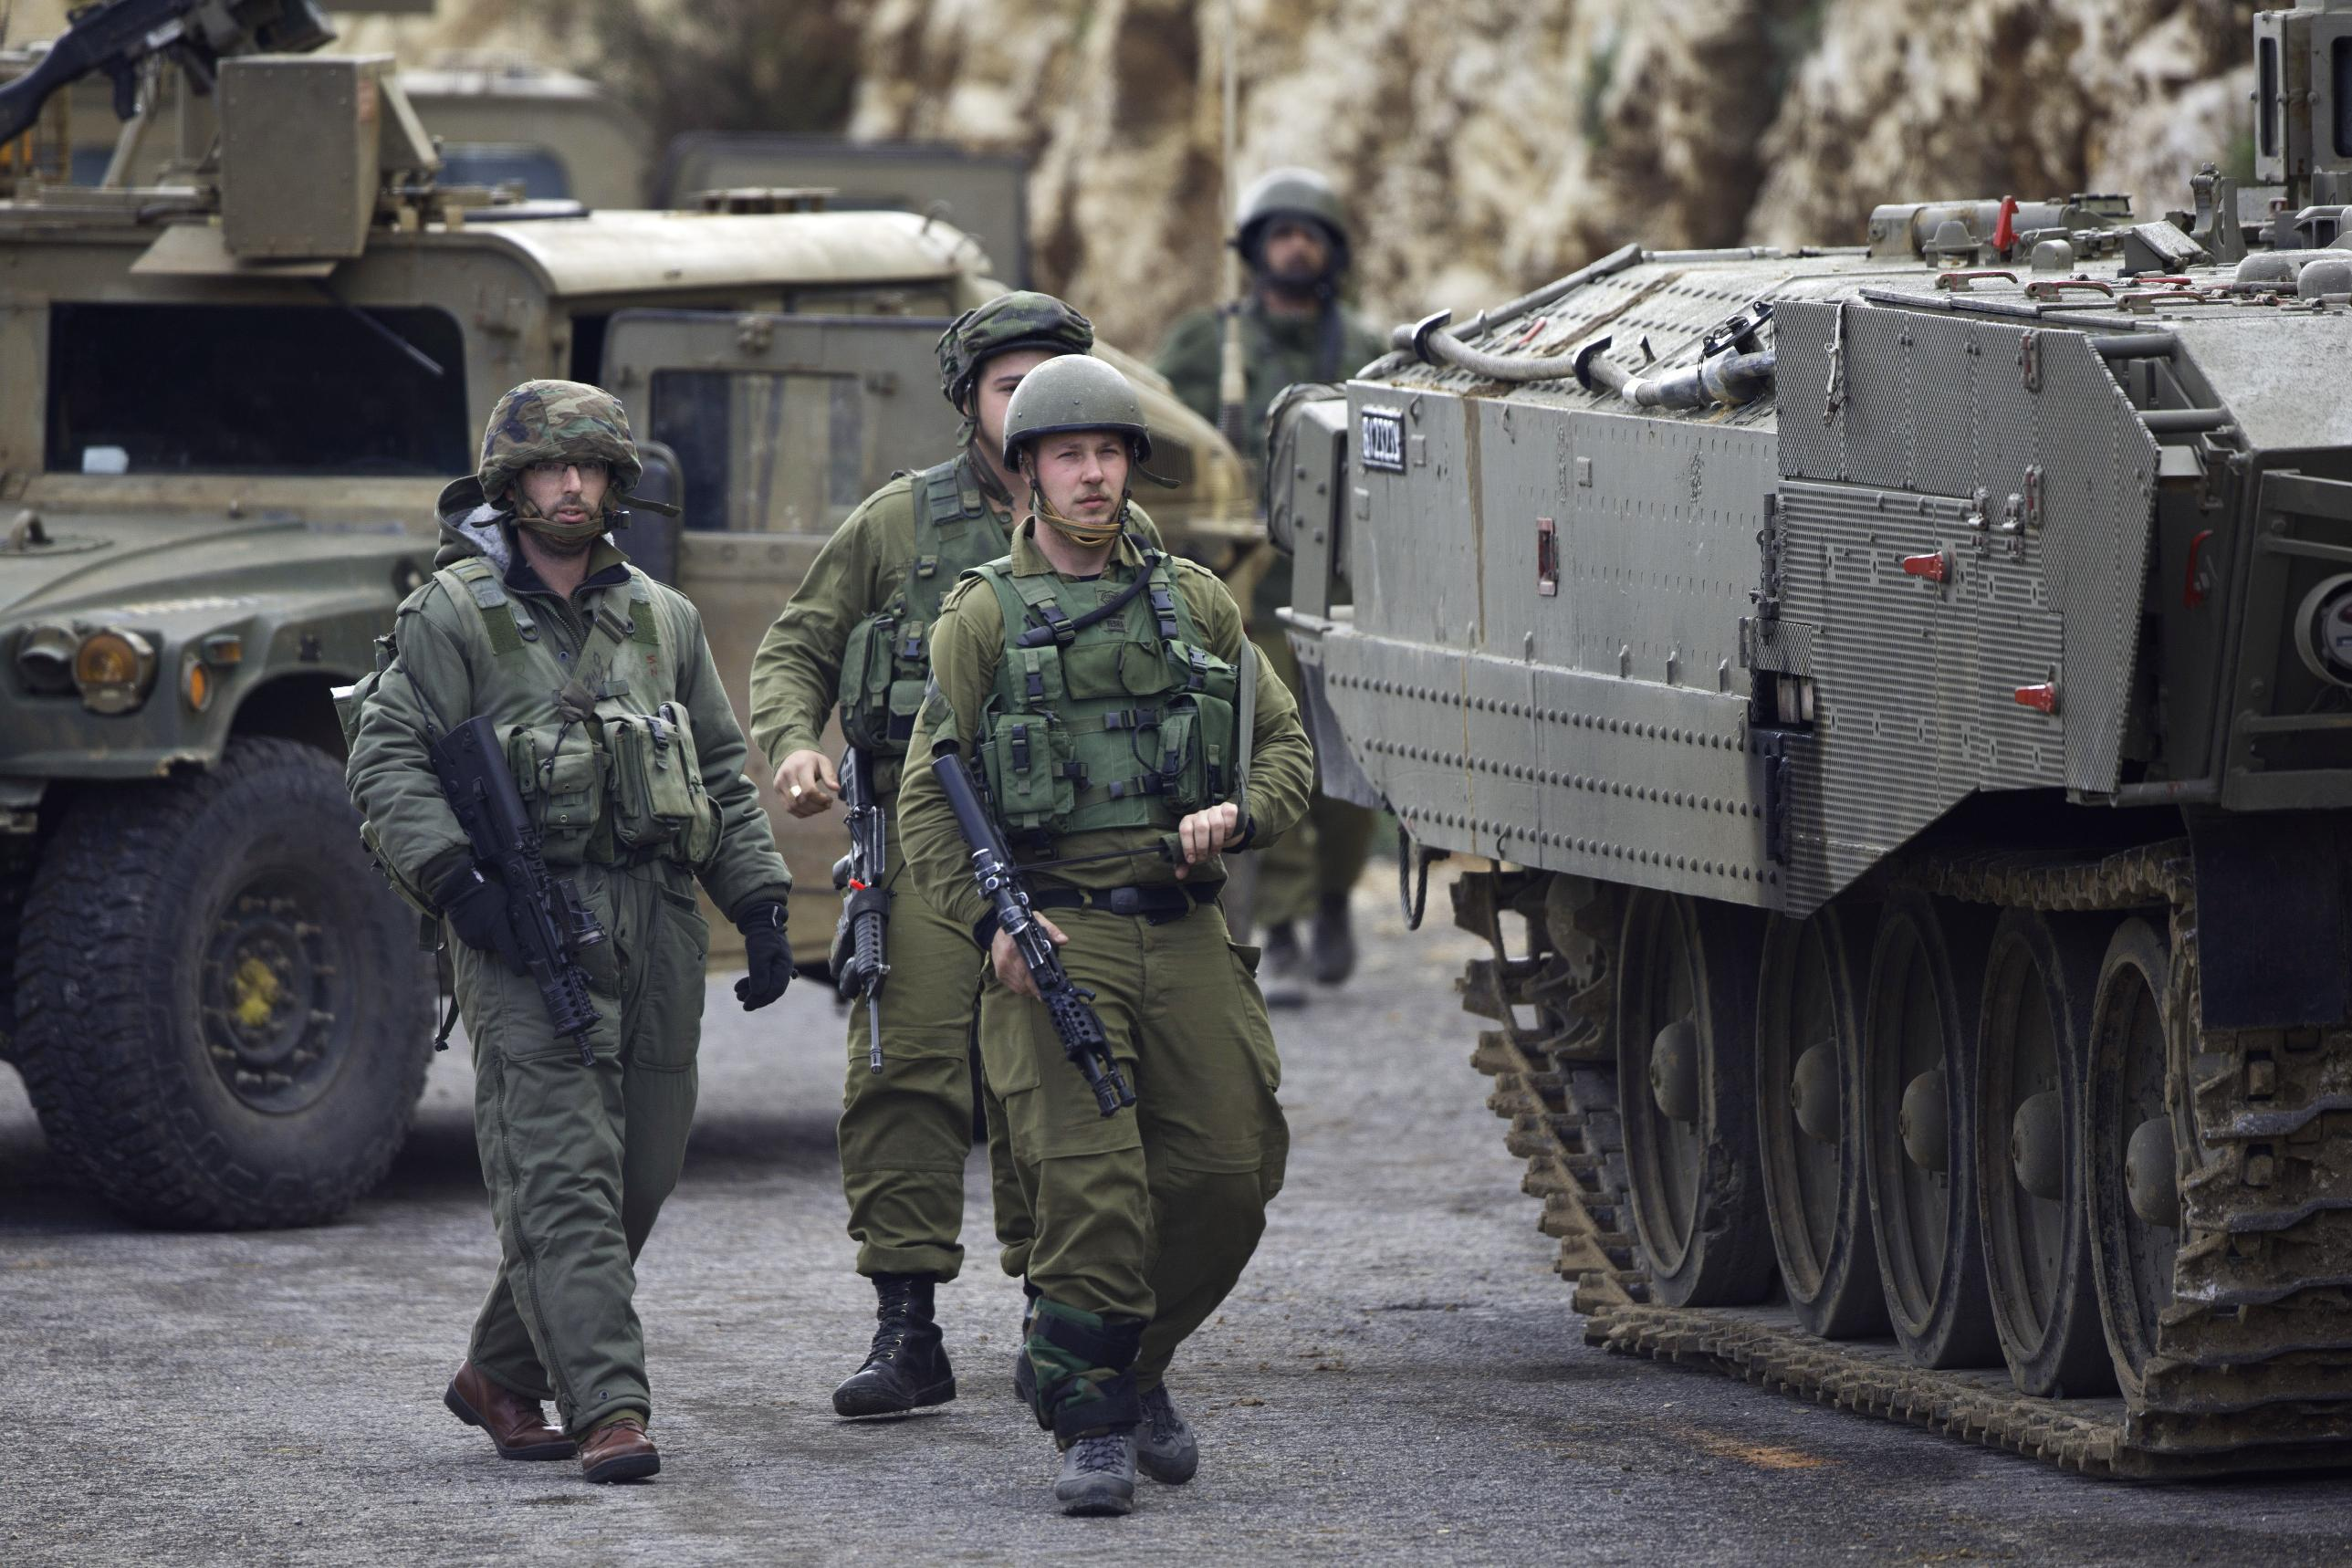 Lebanese Hezbollah hits Israeli convoy, causing casualties